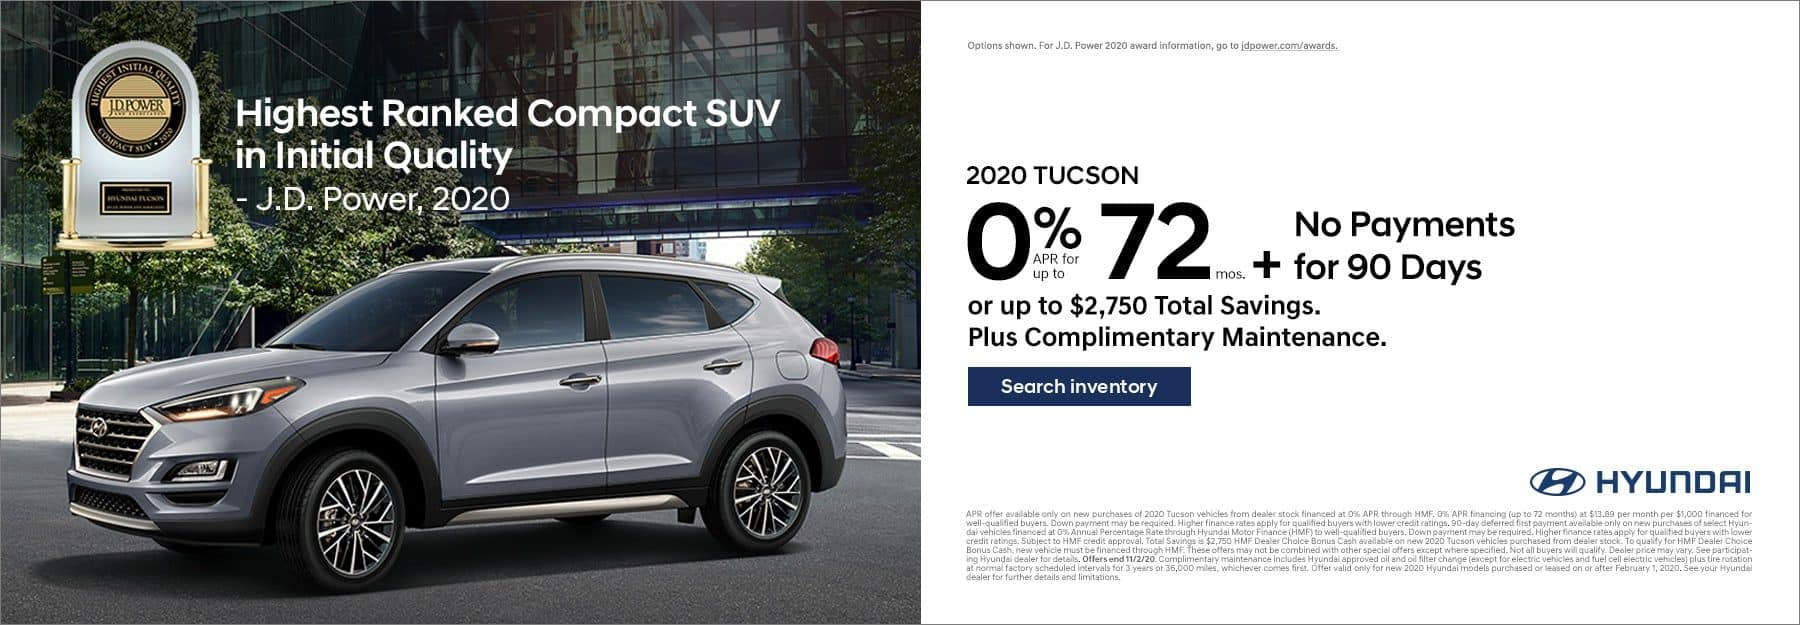 2020 Hyundai Santa Fe 0% APR for 72mo